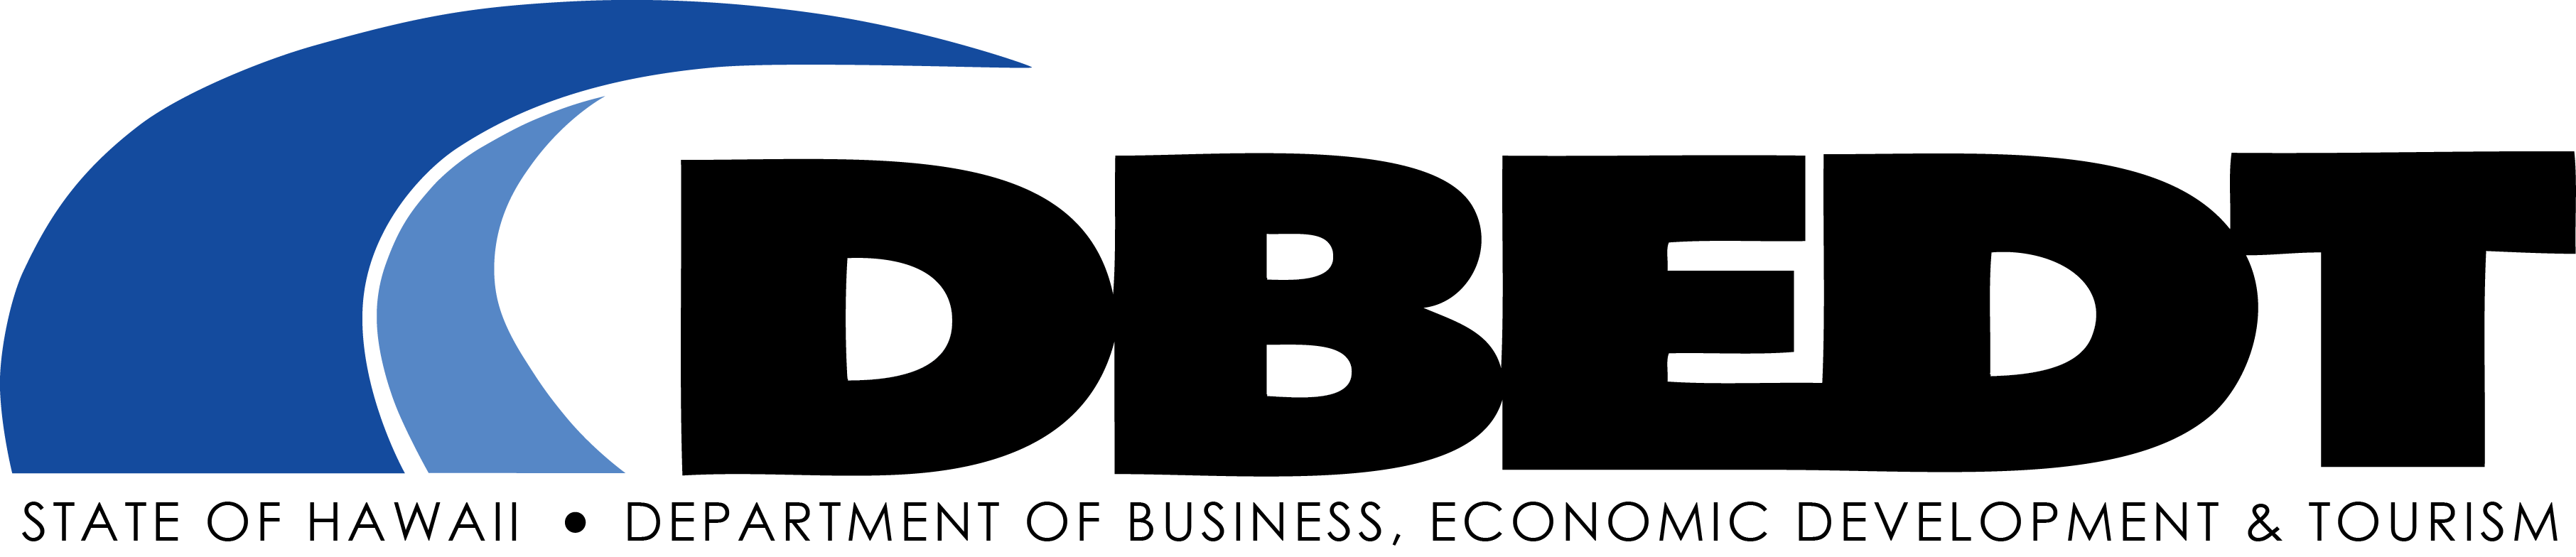 Logo of the Department of Business, Economic Development, and Tourism.